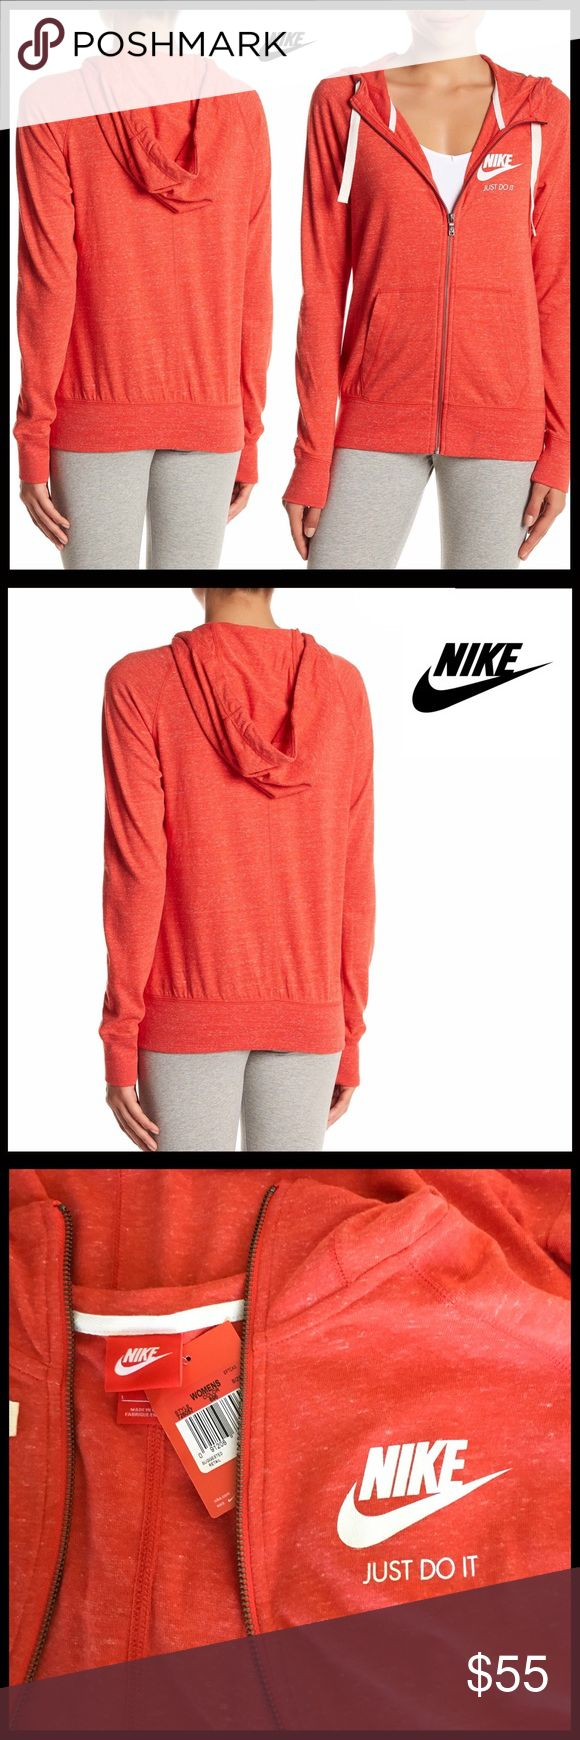 "⭐️⭐️ NIKE ZIP HOODIE GYM JACKET NIKE ZIP HOODIE GYM JACKET   SIZING- S = 4-6, XL = 14-16  COLOR: Coral-Red   ABOUT THIS ITEM * Attached drawstring hood * Soft & cozy, yet lightweight heathered knit construction * Approx 26"" long * Front zip closure * Long sleeves * Split kangaroo front pockets; Logo detail FABRIC Cotton, 40% polyester  ❌NO TRADES❌ ✅BUNDLE DISCOUNTS ✅ OFFERS CONSIDERED (Via the offer button only)   SEARCH # Nike Tops Sweatshirts & Hoodies"